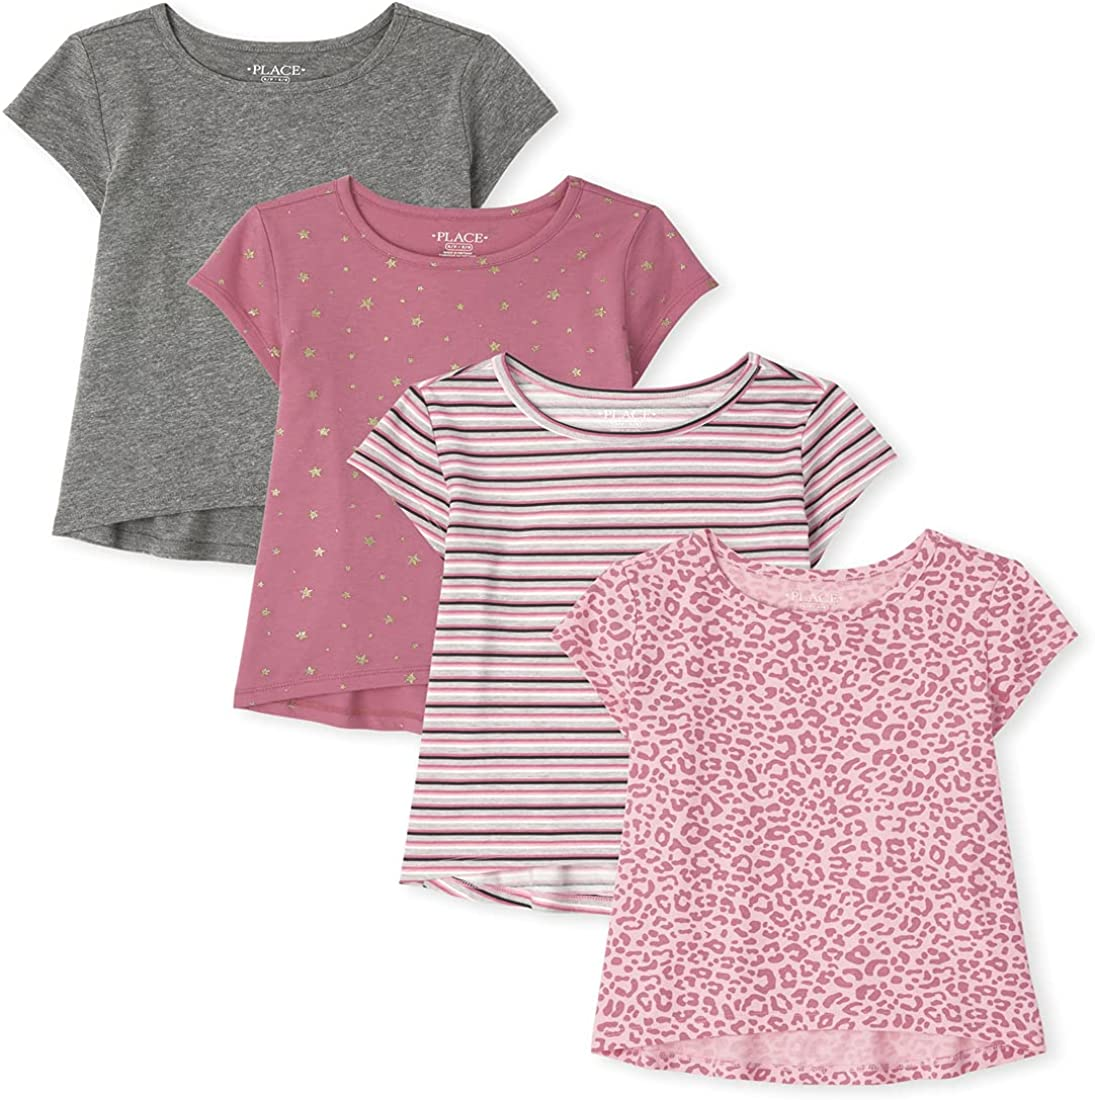 The Children's Place Girls' Short Sleeve Print Top 4-Pack